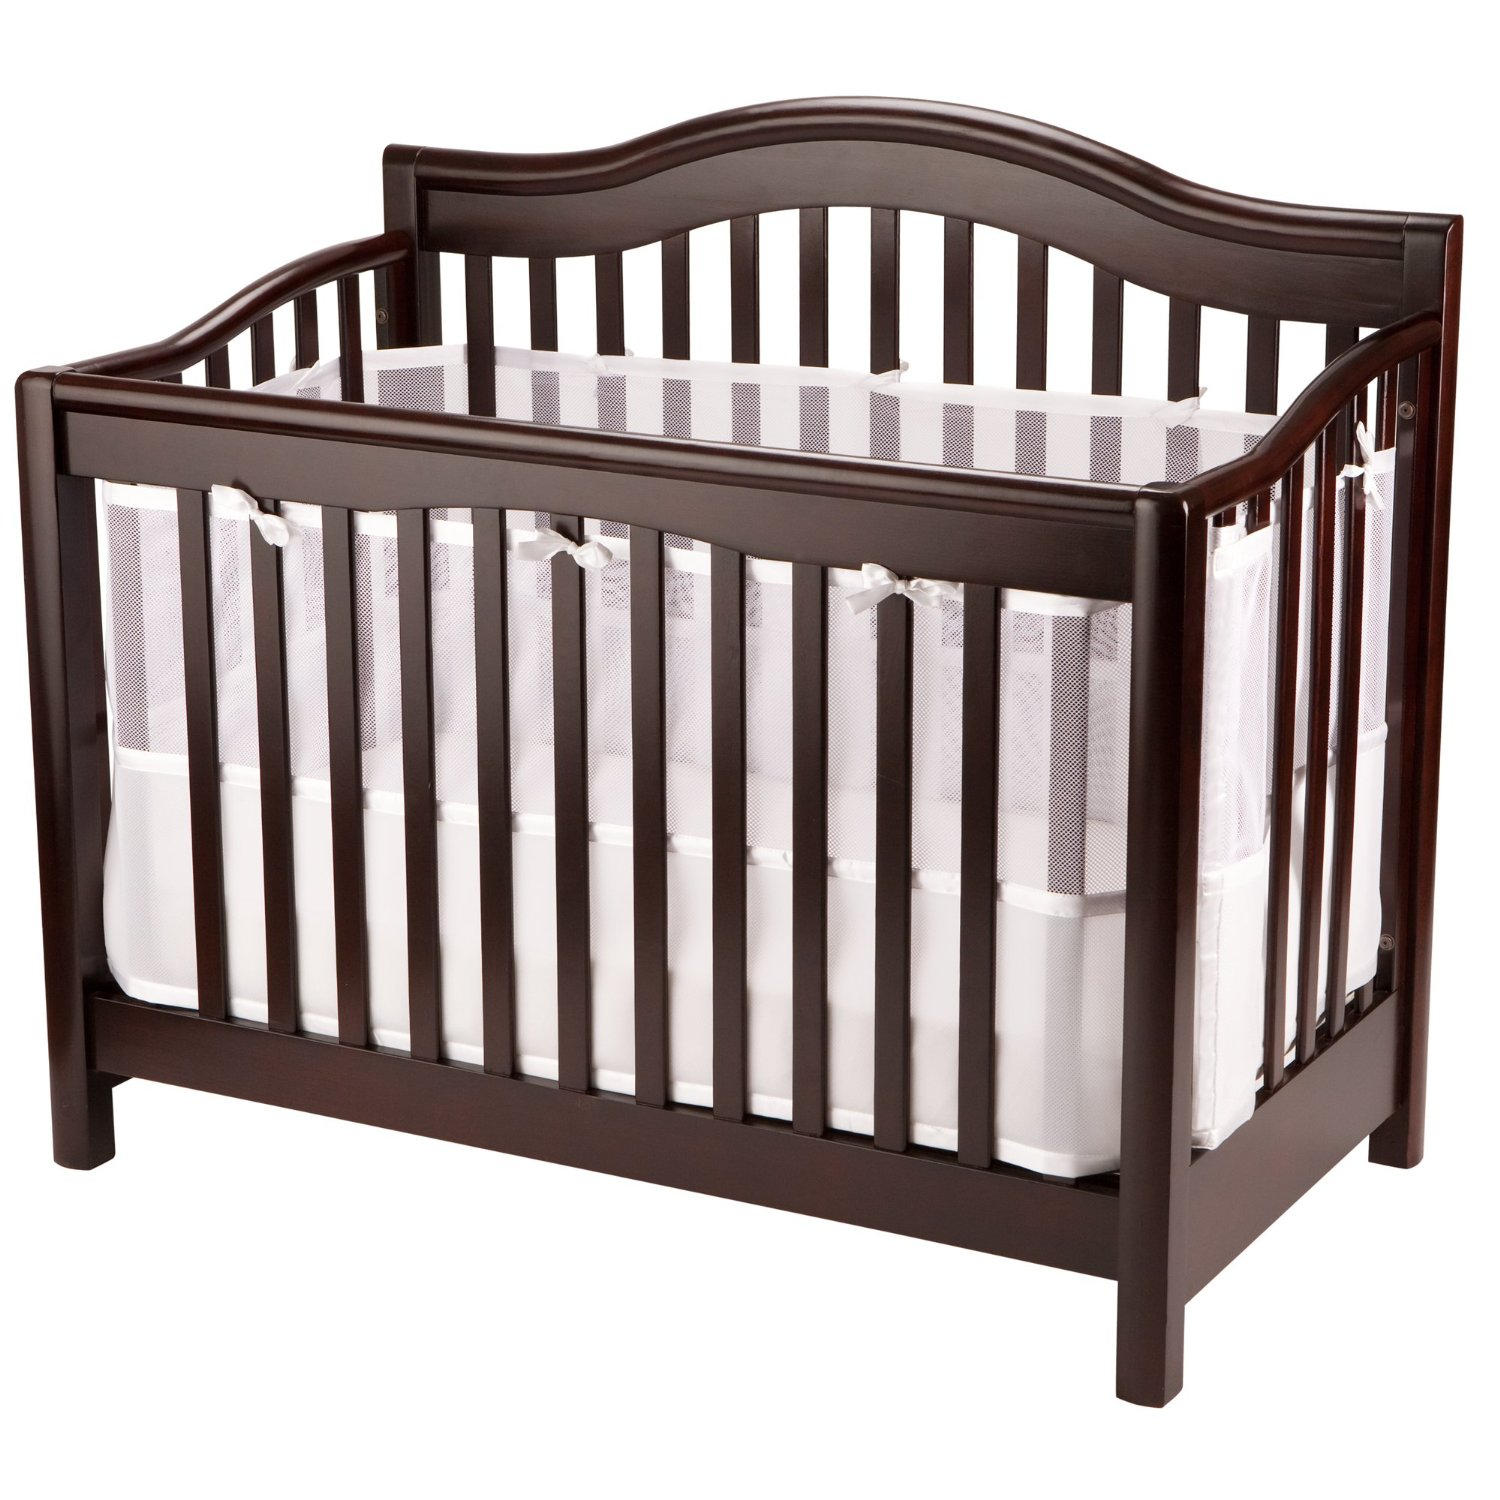 Baby Safe Crib Bumpers Its Baby Time